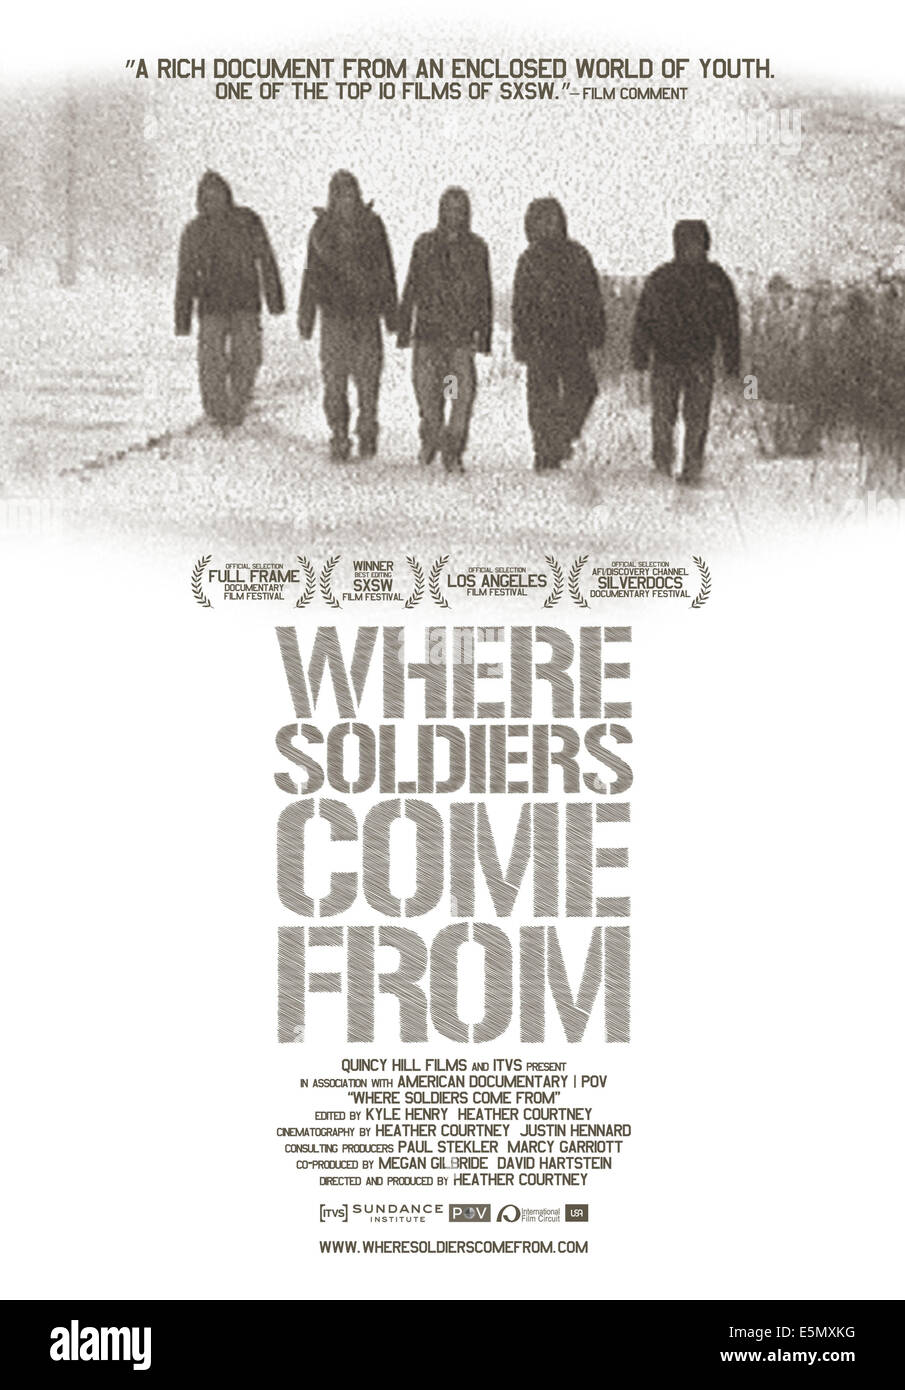 WHERE SOLDIERS COME FROM, US poster art, 2011 - Stock Image